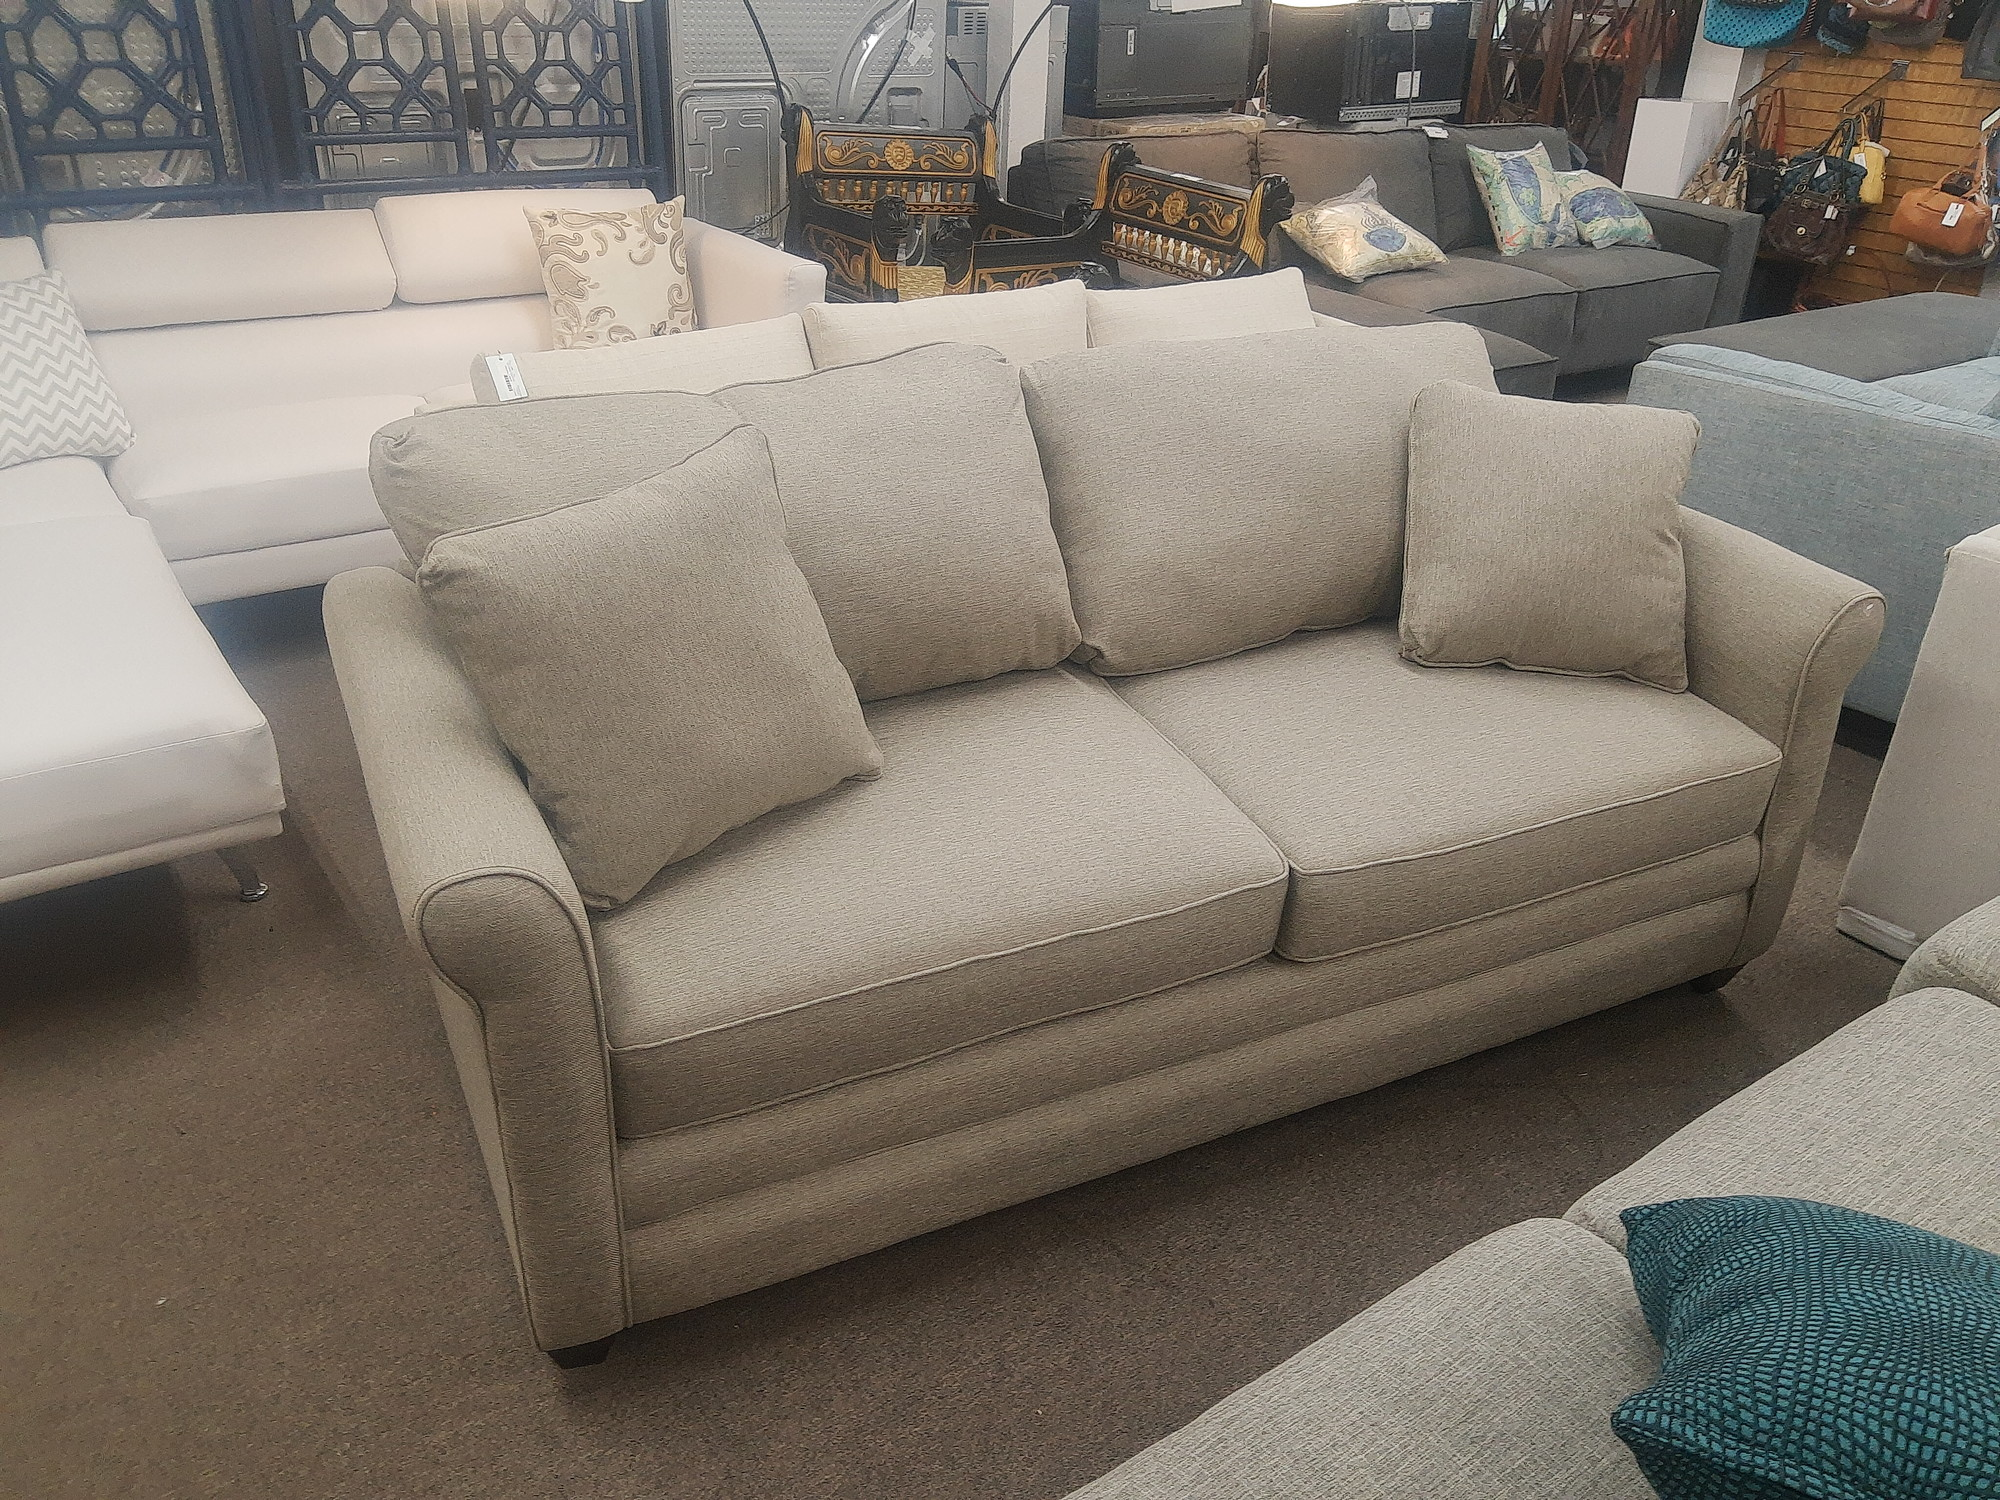 Klaussner 2 Cushion Sofa, a better quality brand carried by Jordans Furniture among others.